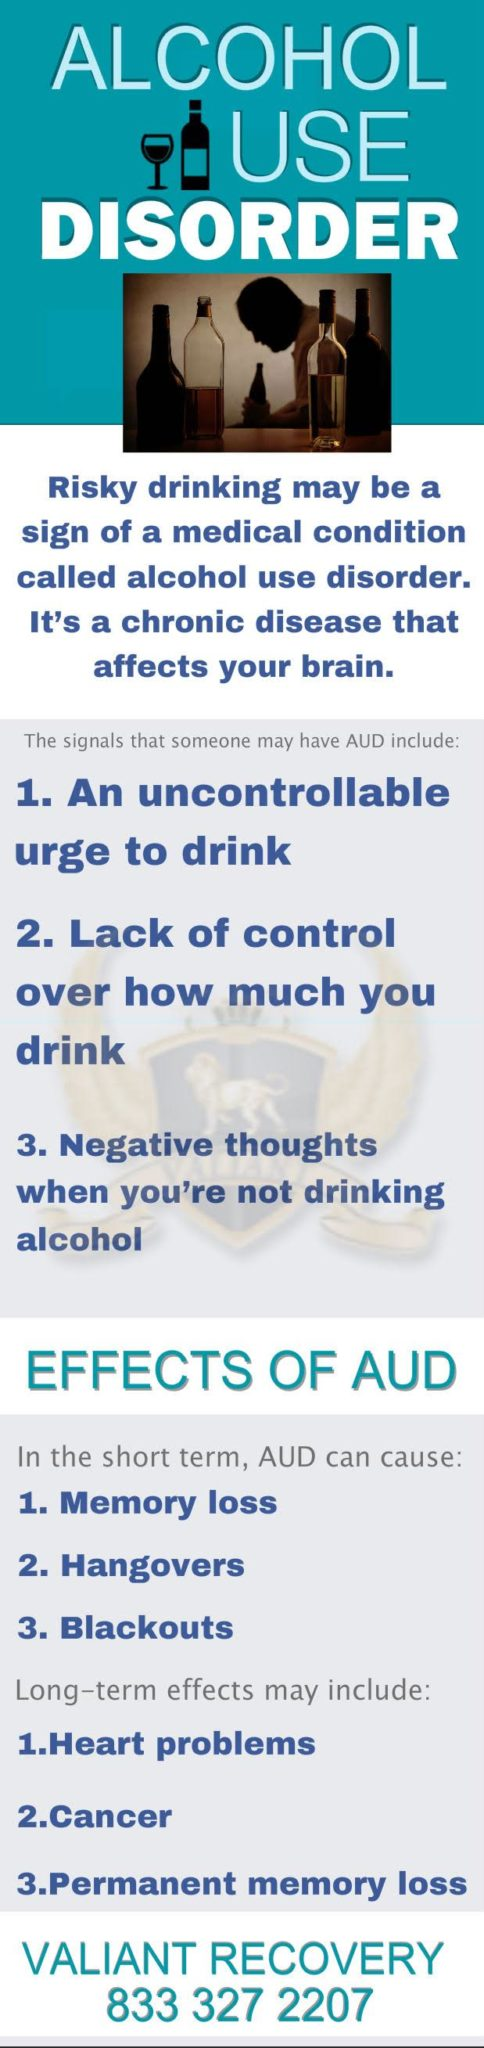 Alcohol Use Disorder - AUD